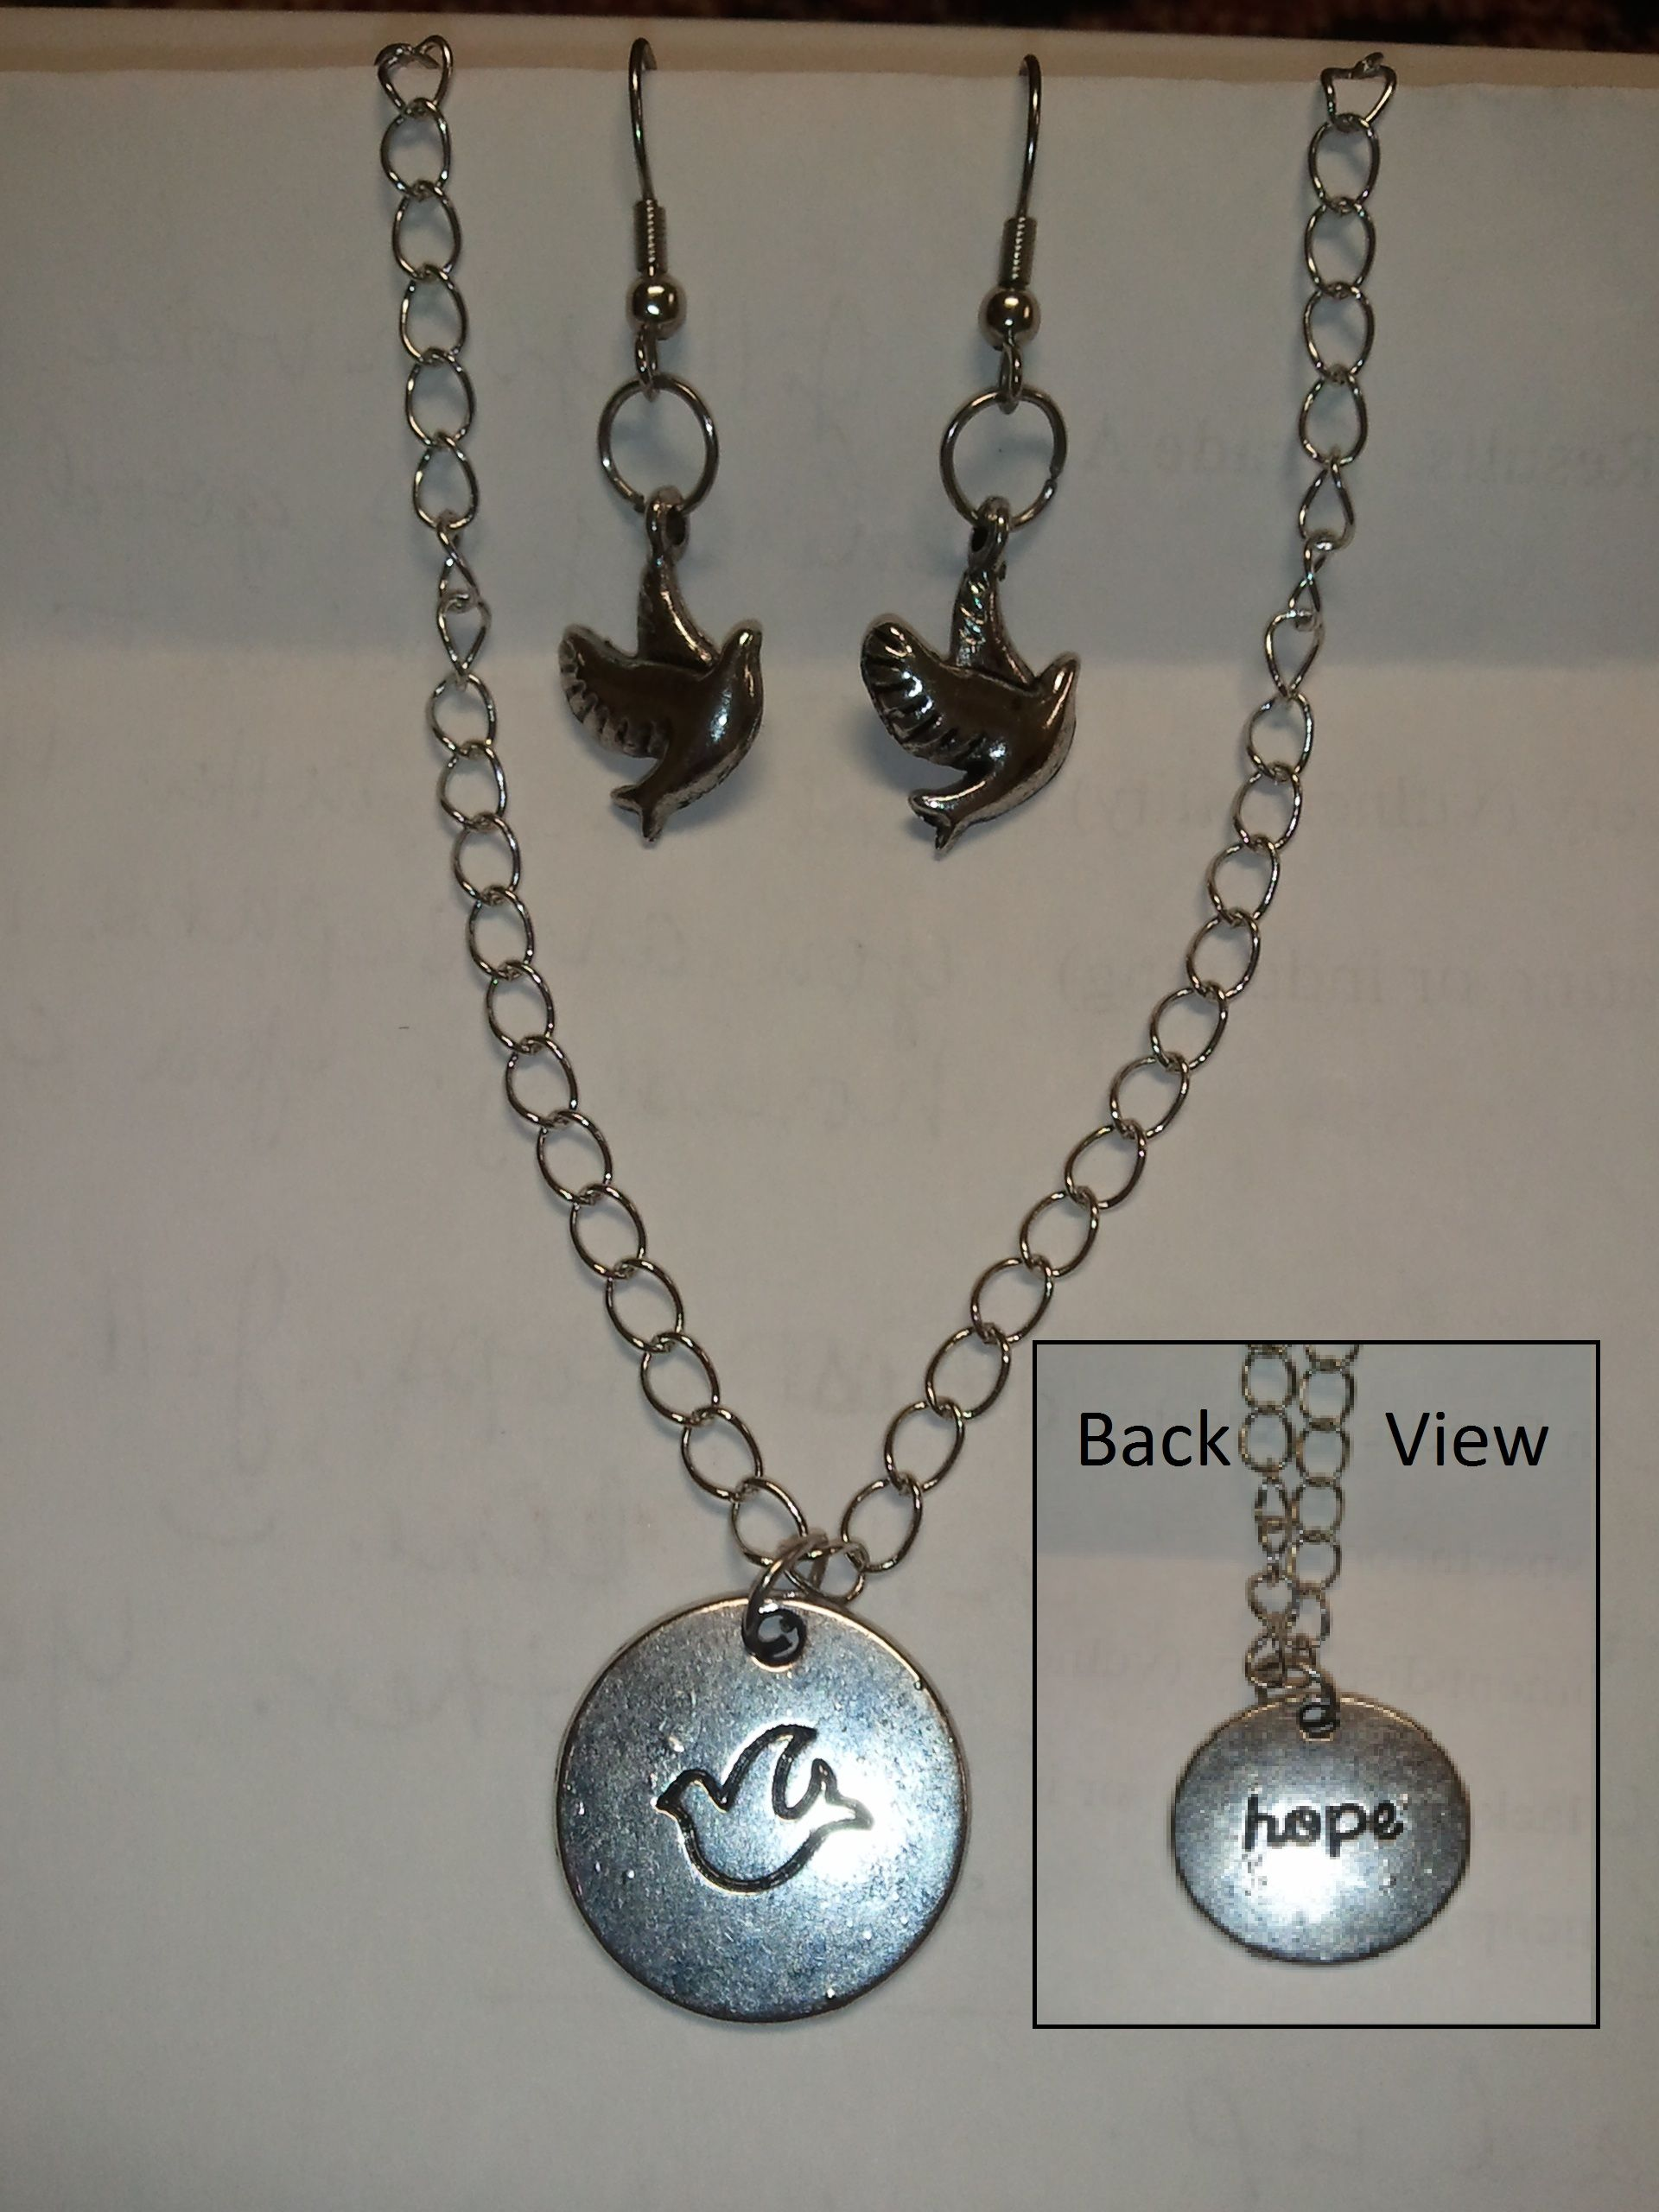 Hope necklace and Dove earring set  $10.00